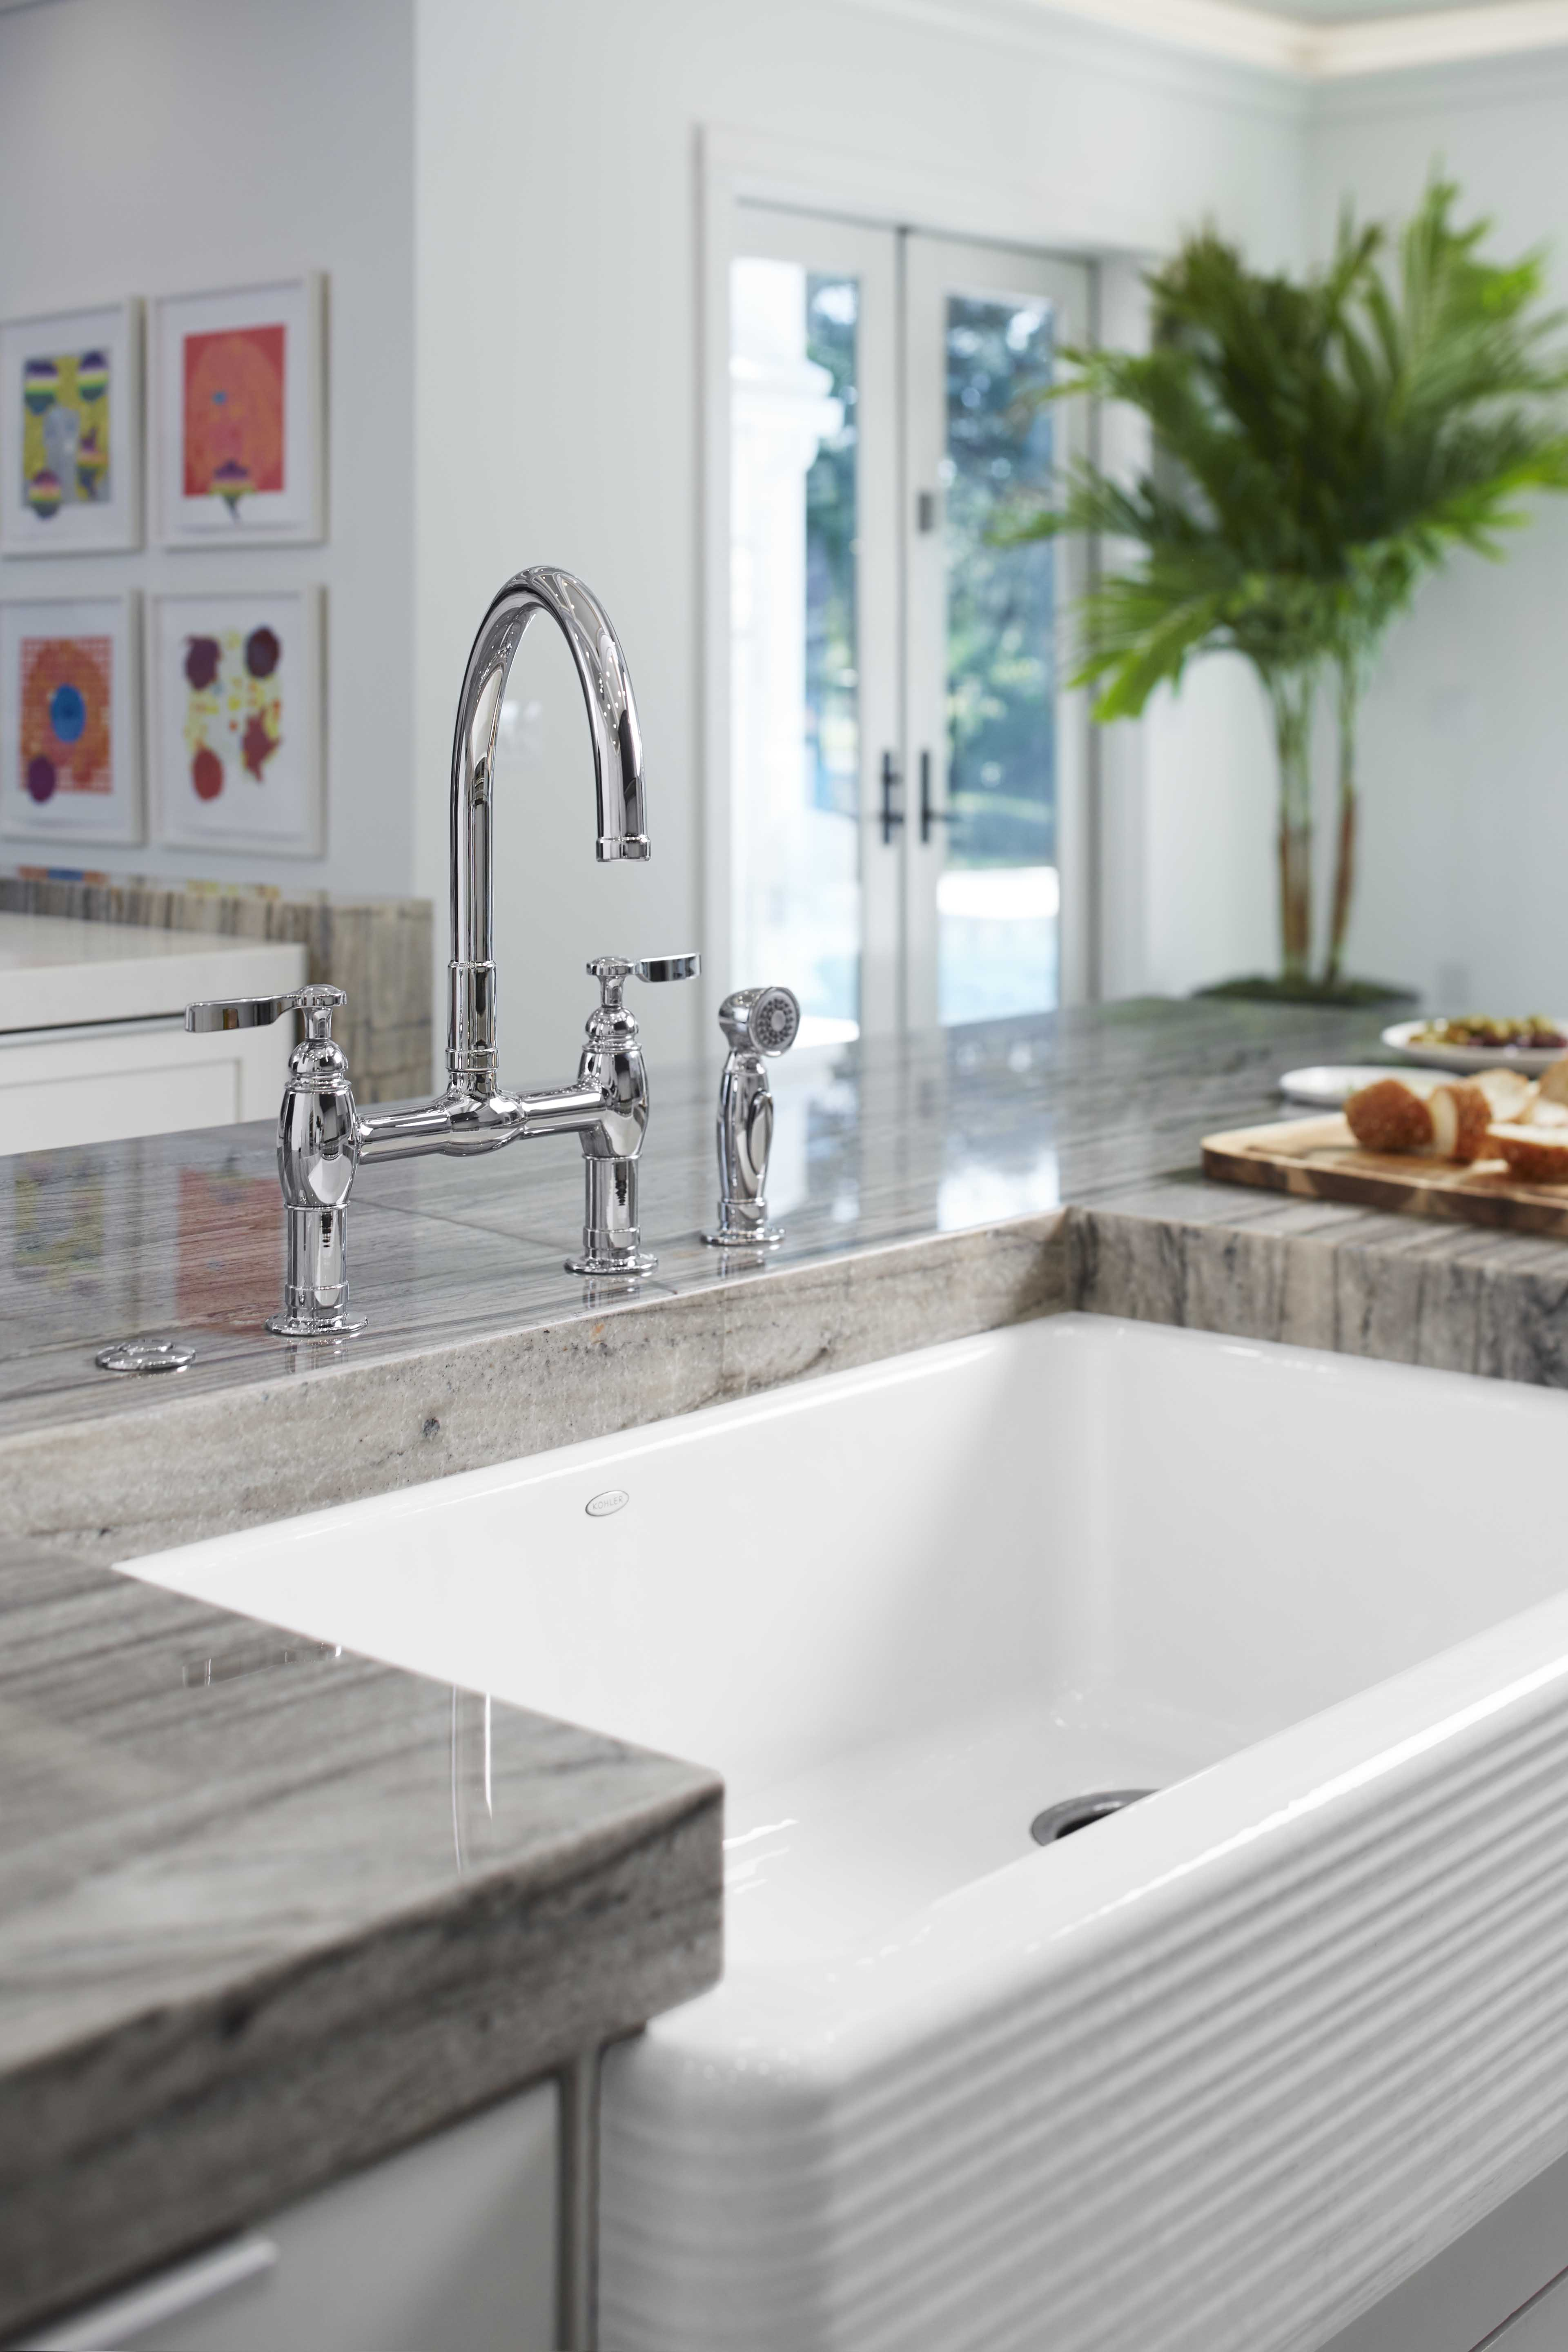 Parq Kitchen Faucet     Hayridge Design on Whitehaven Kitchen Sink     Set into granite, a cast-iron sink delivers the clean look and functionality of a large single basin while the apron-front design introduces artistry and classic farmhouse style.